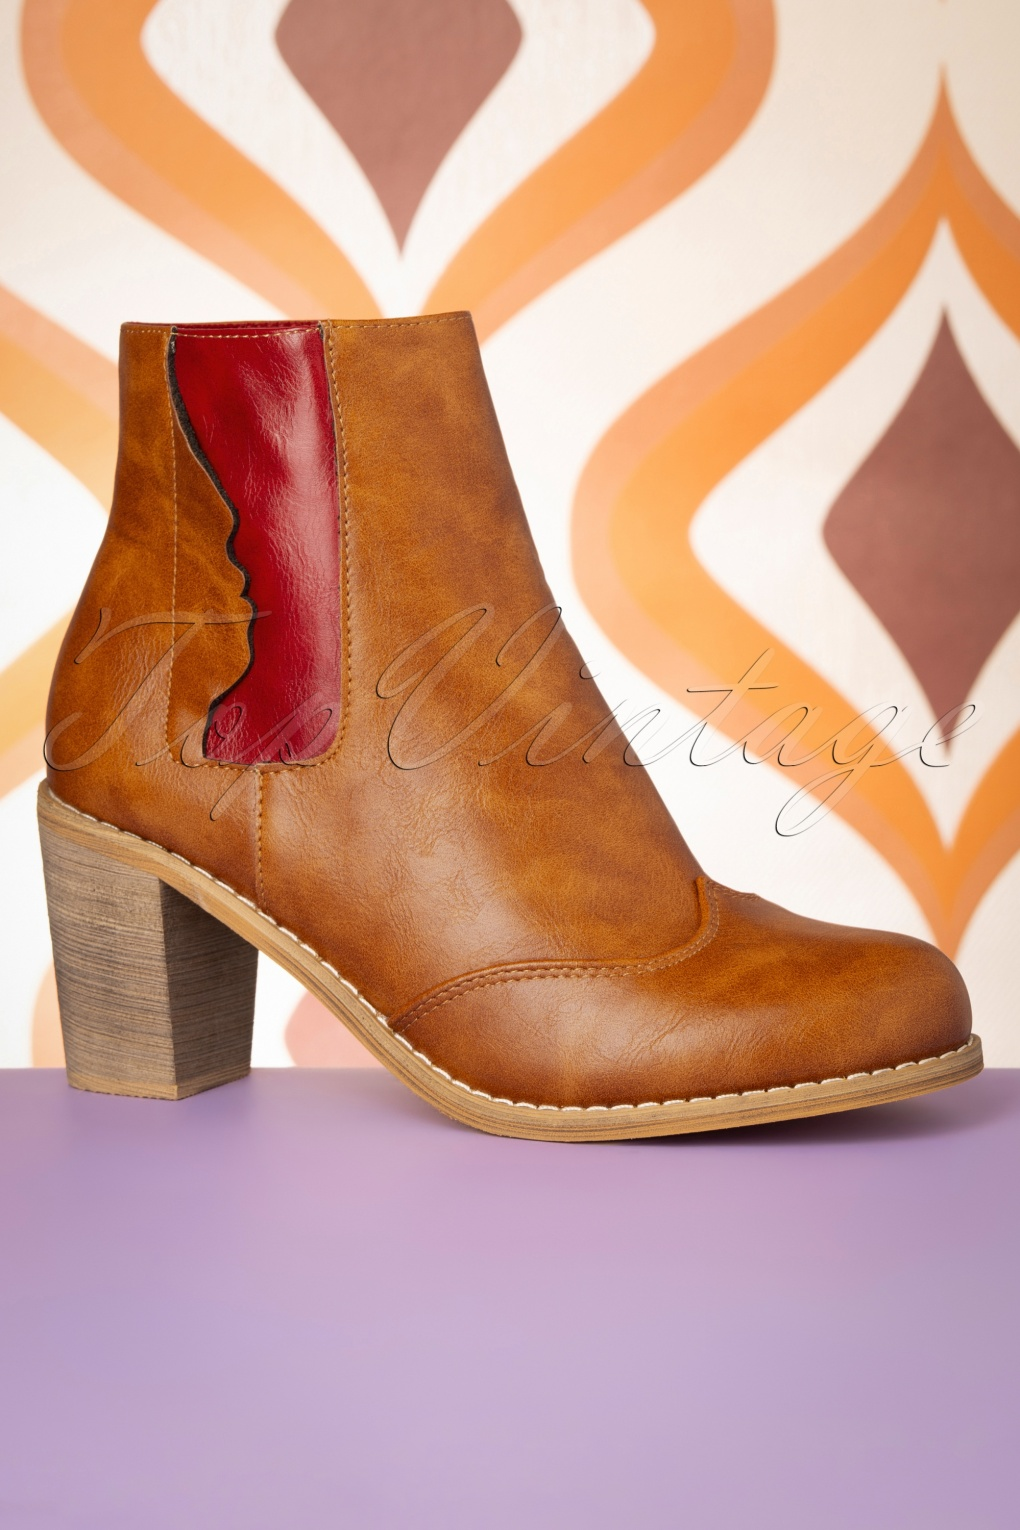 70s Shoes, Platforms, Boots, Heels | 1970s Shoes 70s Keenak Face Boots in Cognac £71.07 AT vintagedancer.com